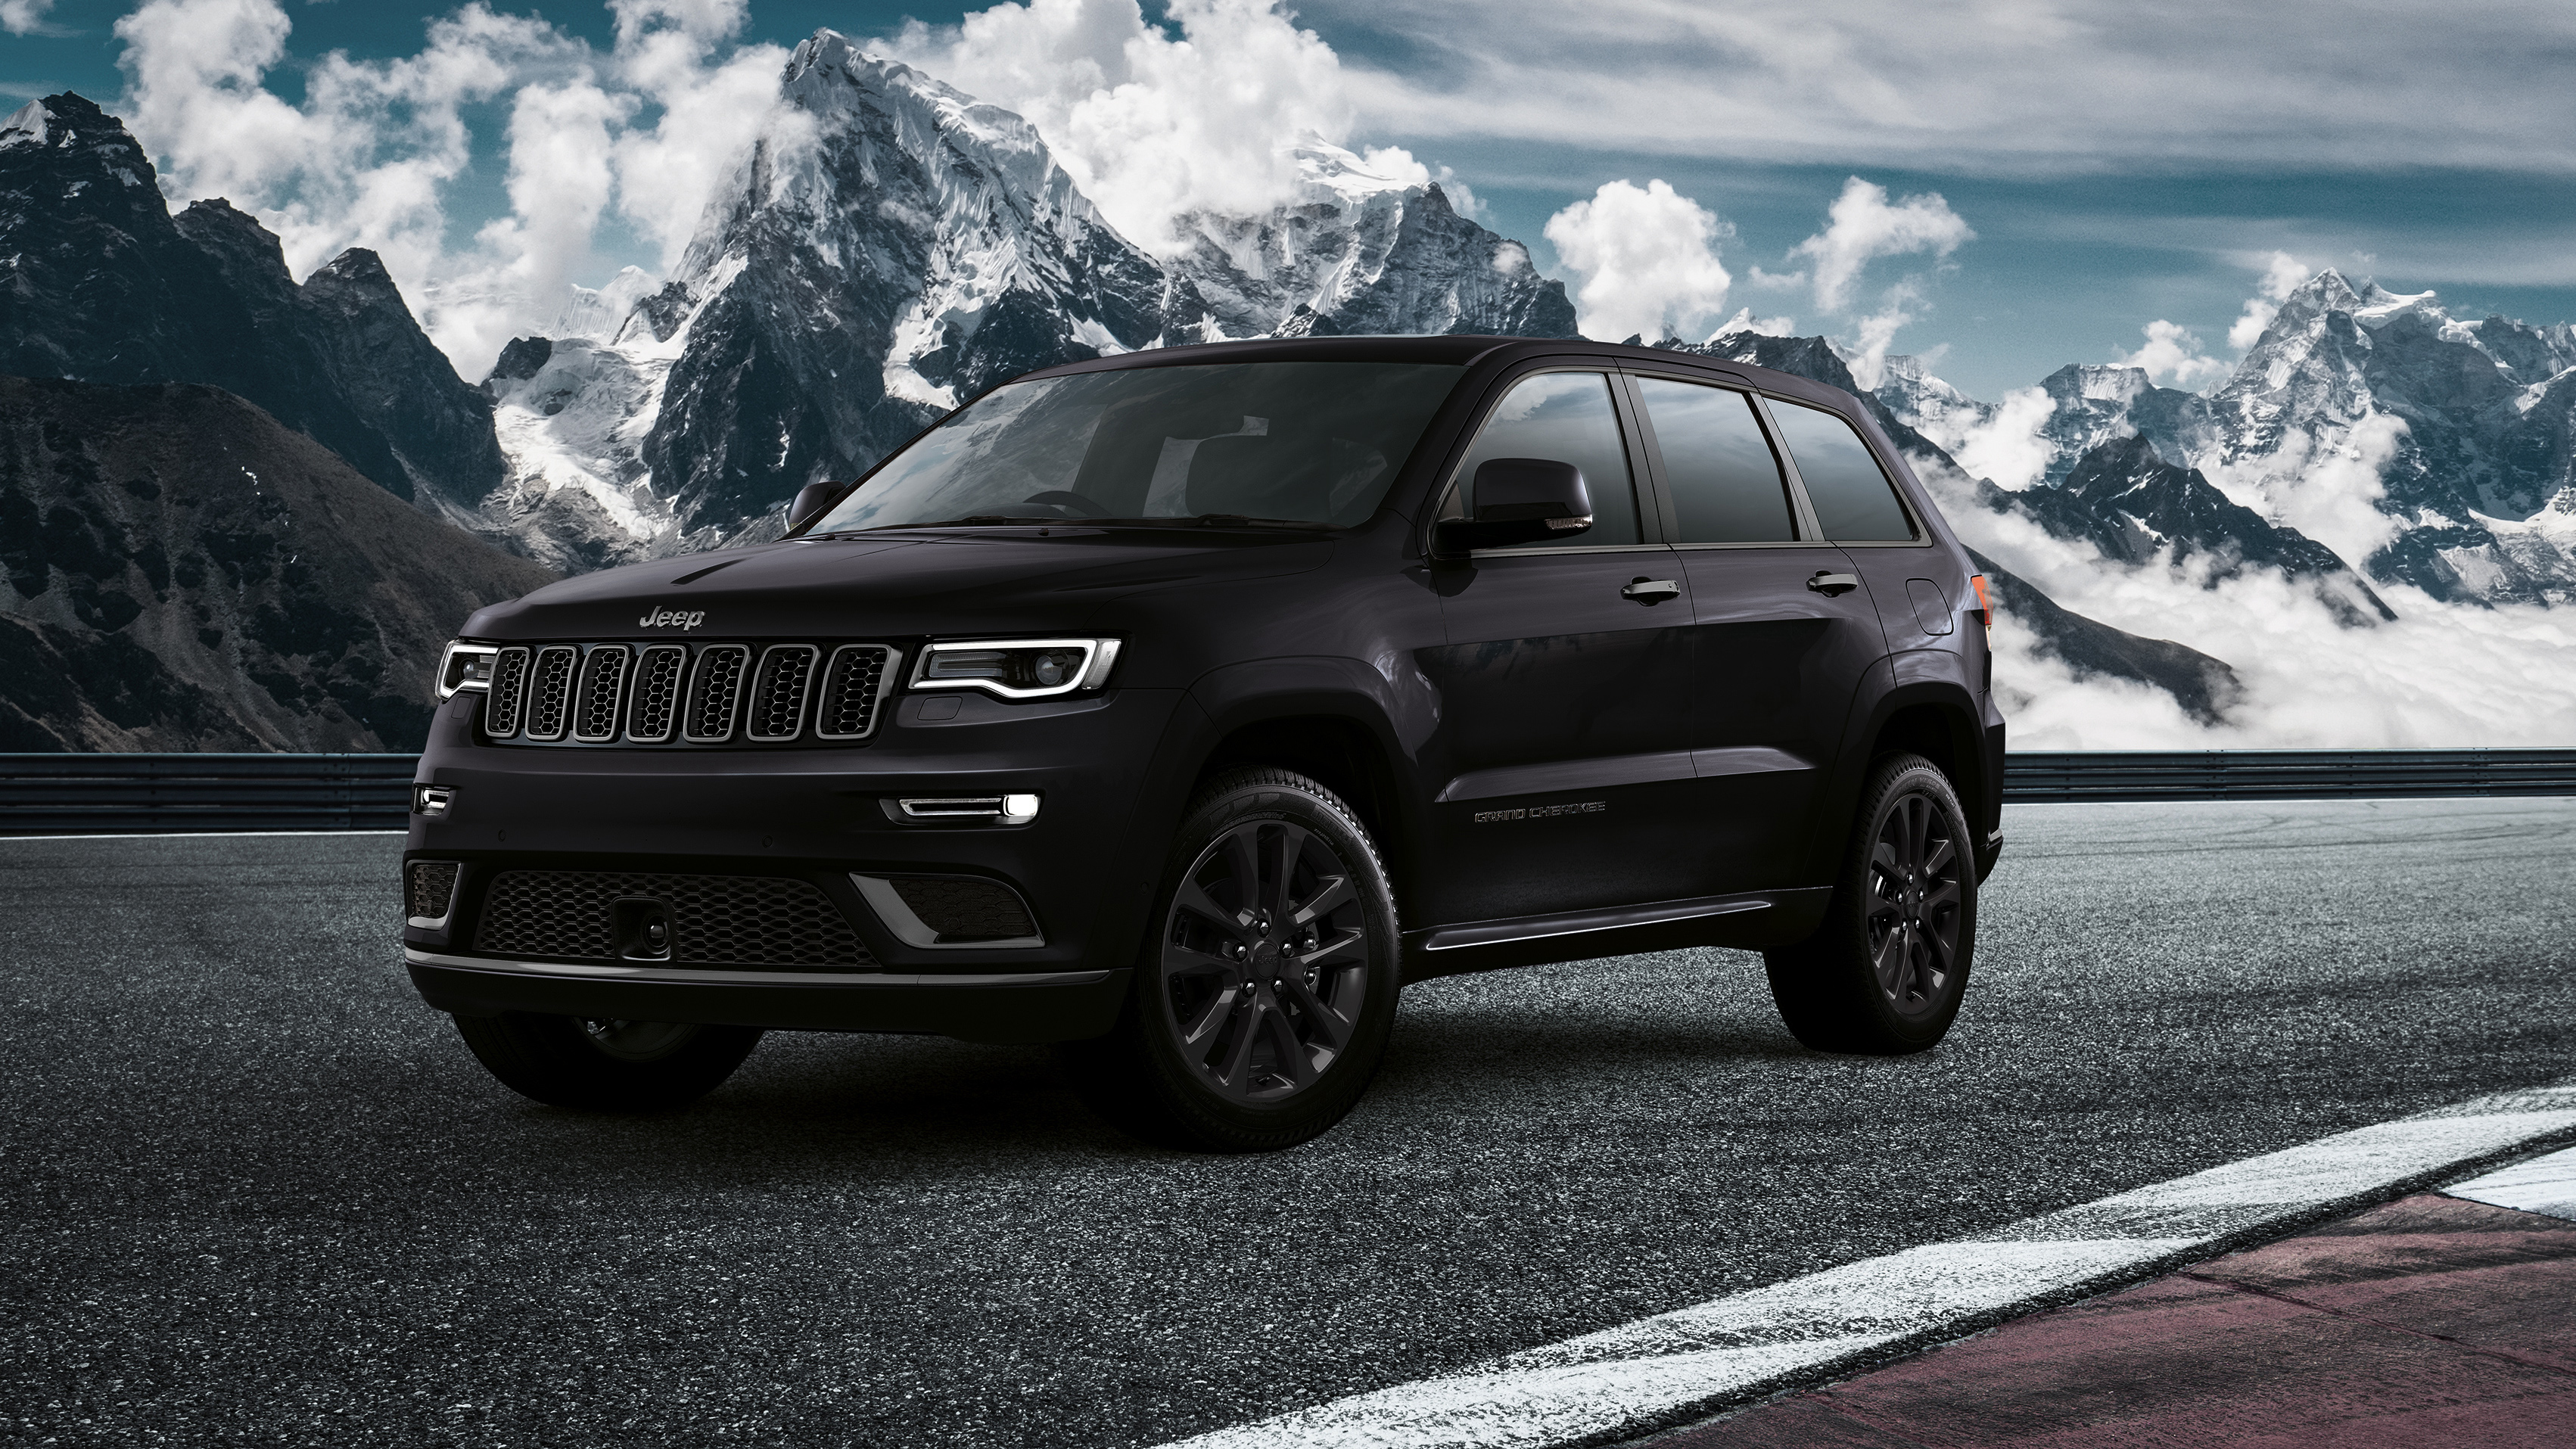 2019 Jeep Grand Cherokee S Wallpaper HD Car Wallpapers 3404x1915